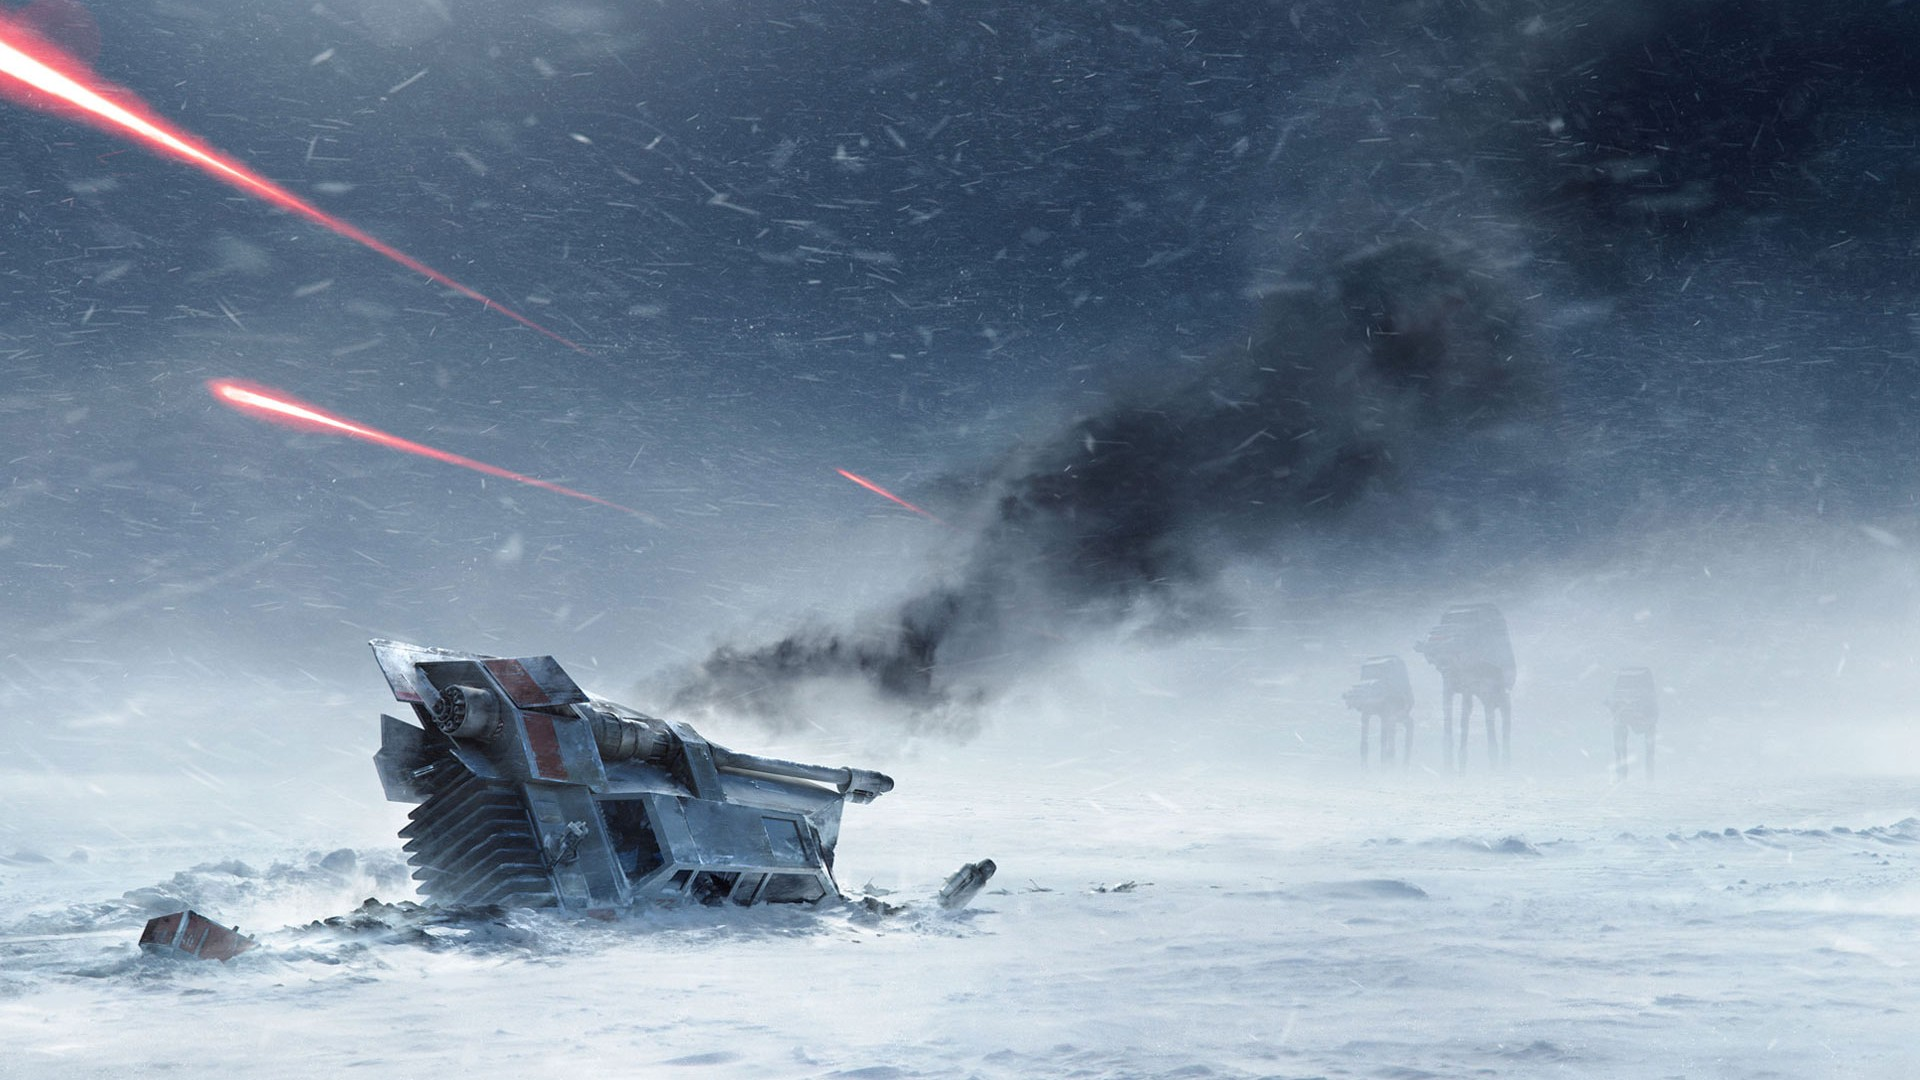 Star Wars: Battlefront Releasing Holiday 2015 as a First-Person Shooter